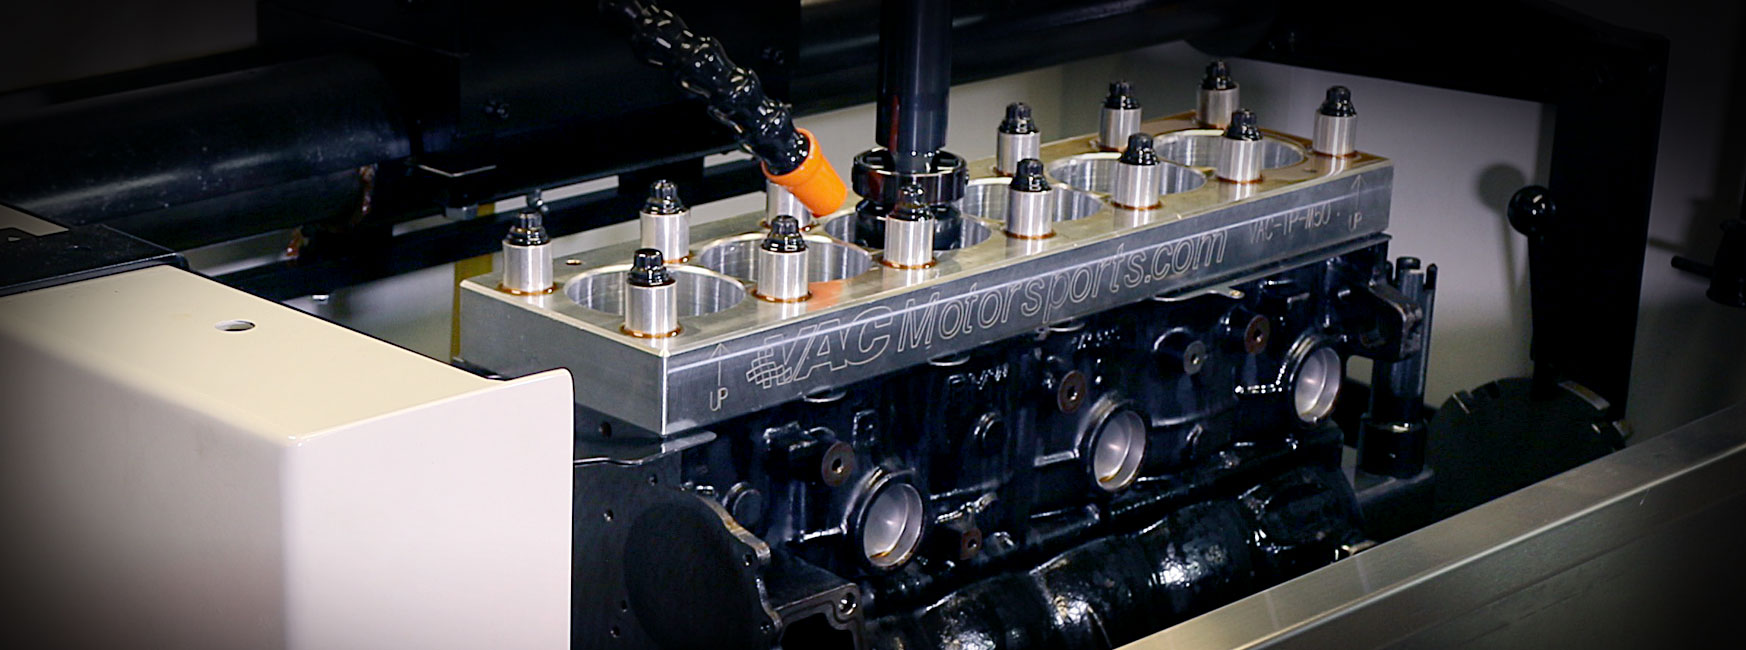 Performance Machining Services